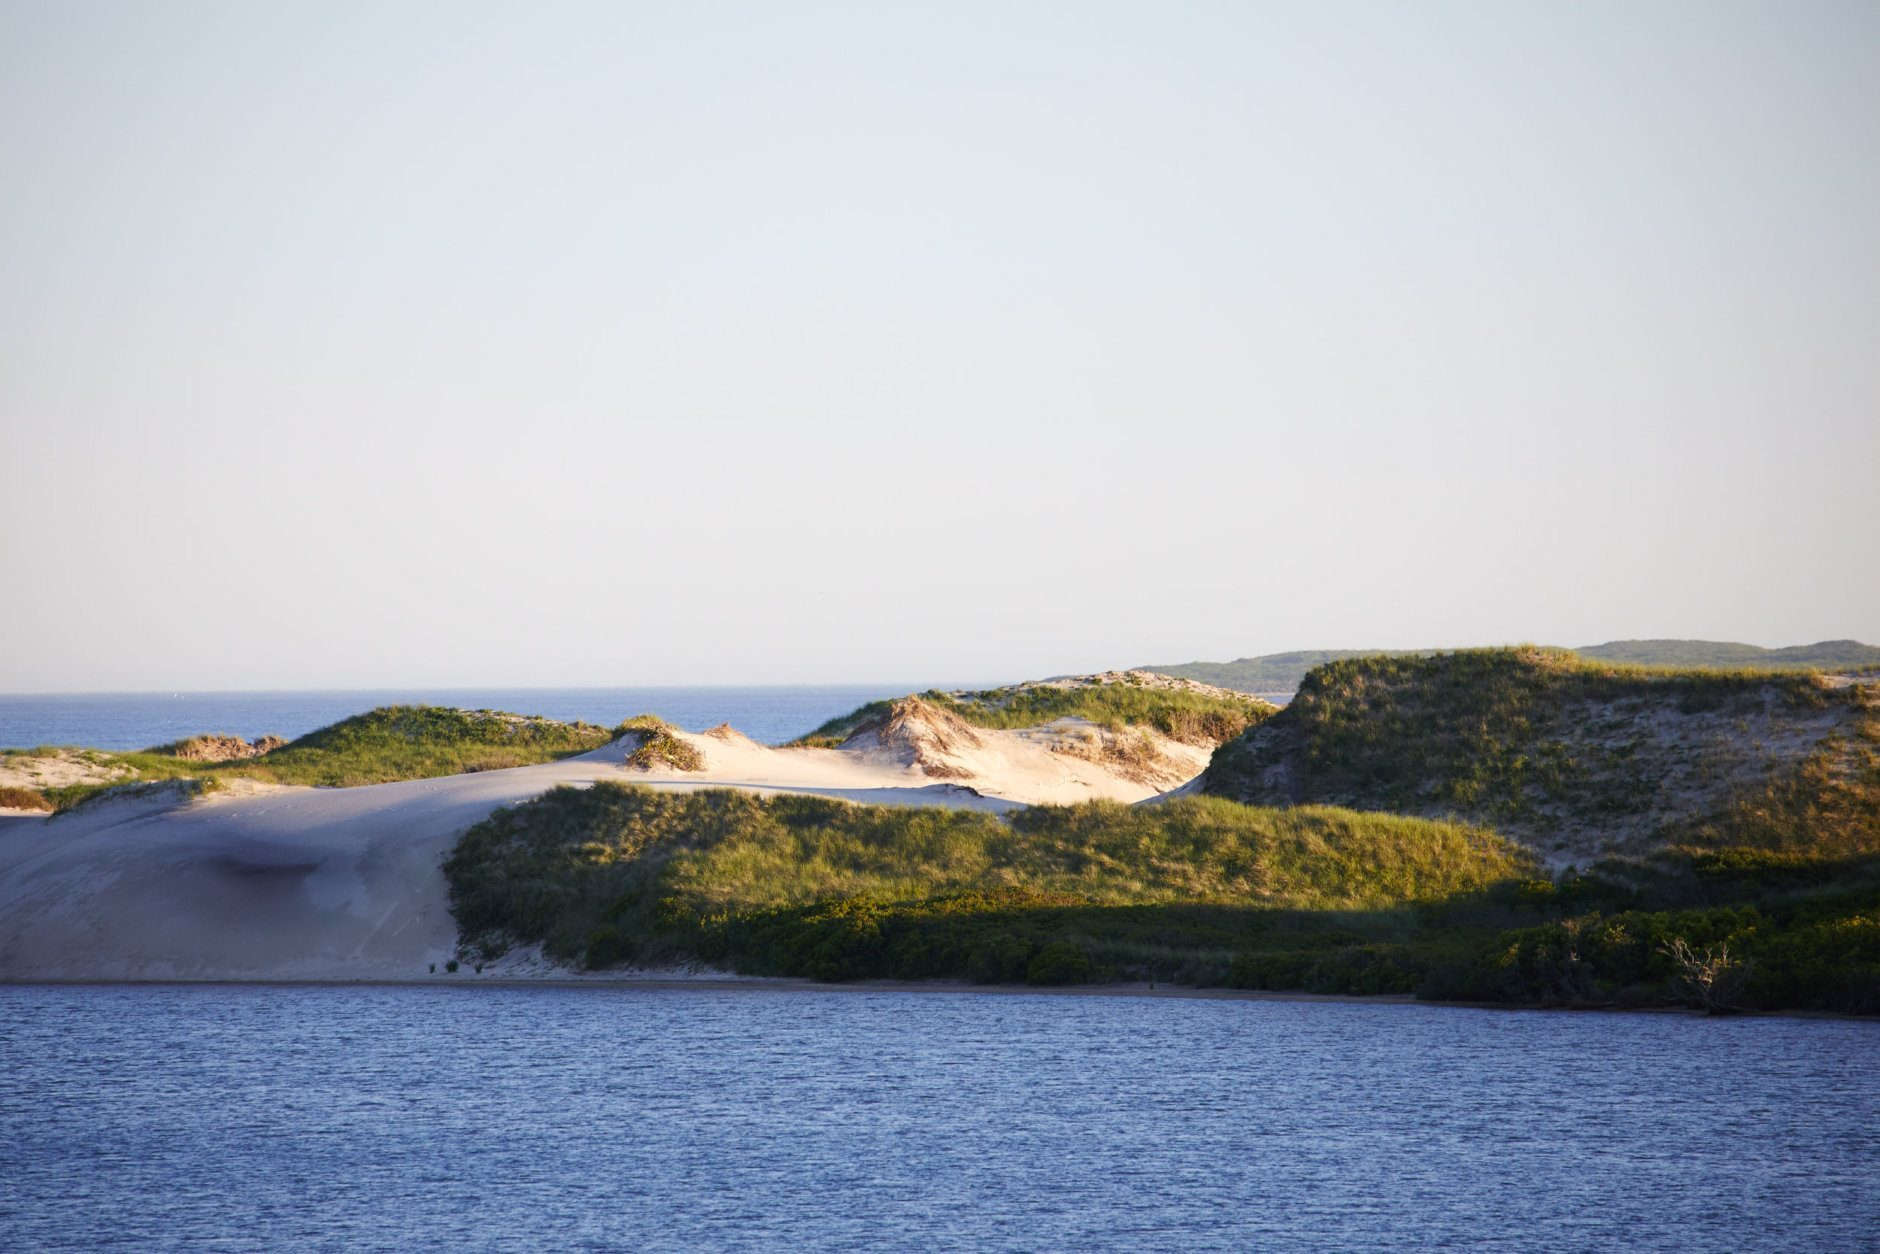 When Mrs. Onassis purchased the Aquinnah property in 1979, she was drawn to the untamed beauty of the oceanfront property's coastal dunes, freshwater ponds, and the abundance of plants, trees, birds and other wildlife, and she fiercely protected it, as has her daughter Caroline Kennedy in the years since. (Laura Moss Photography)